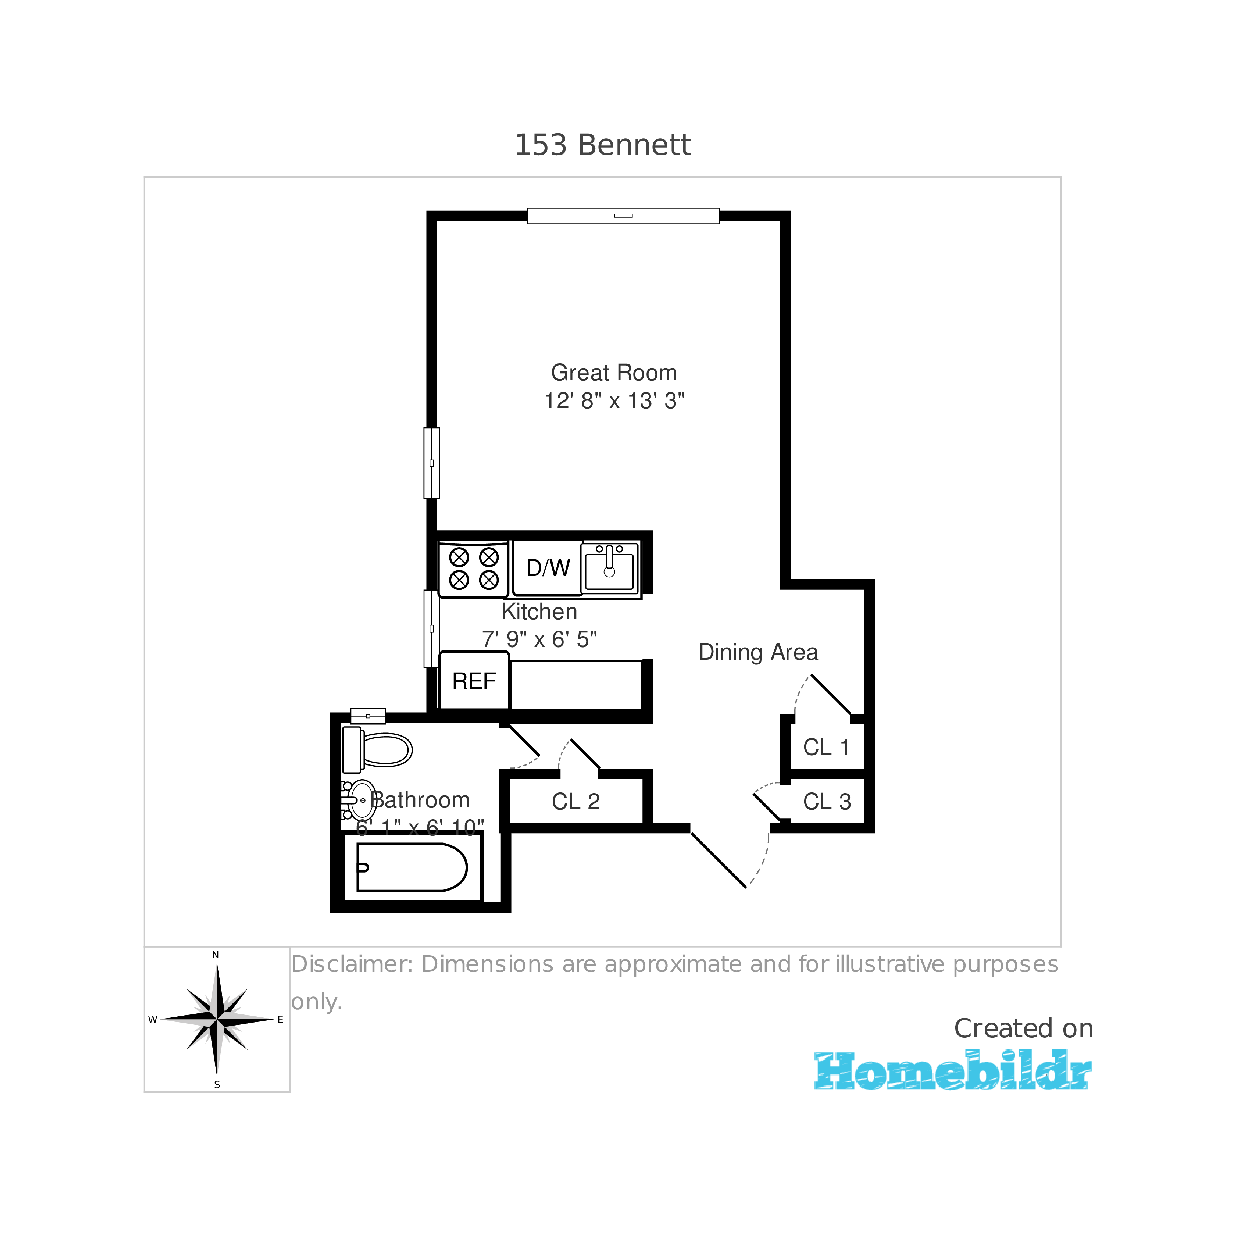 Homebildr.com Floorplan